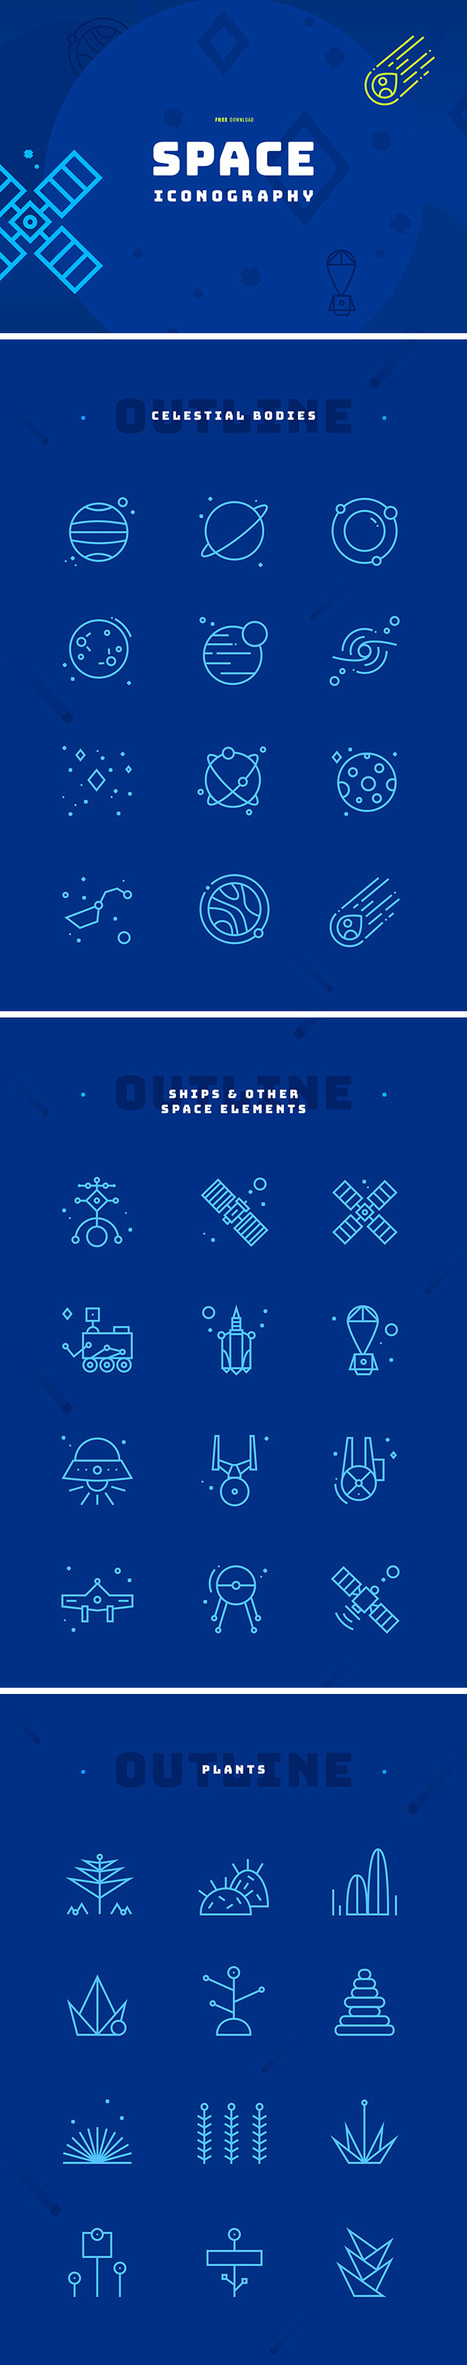 Space Iconography: 36 Free Icons | Les belles ressources ! print - web - digital | Scoop.it